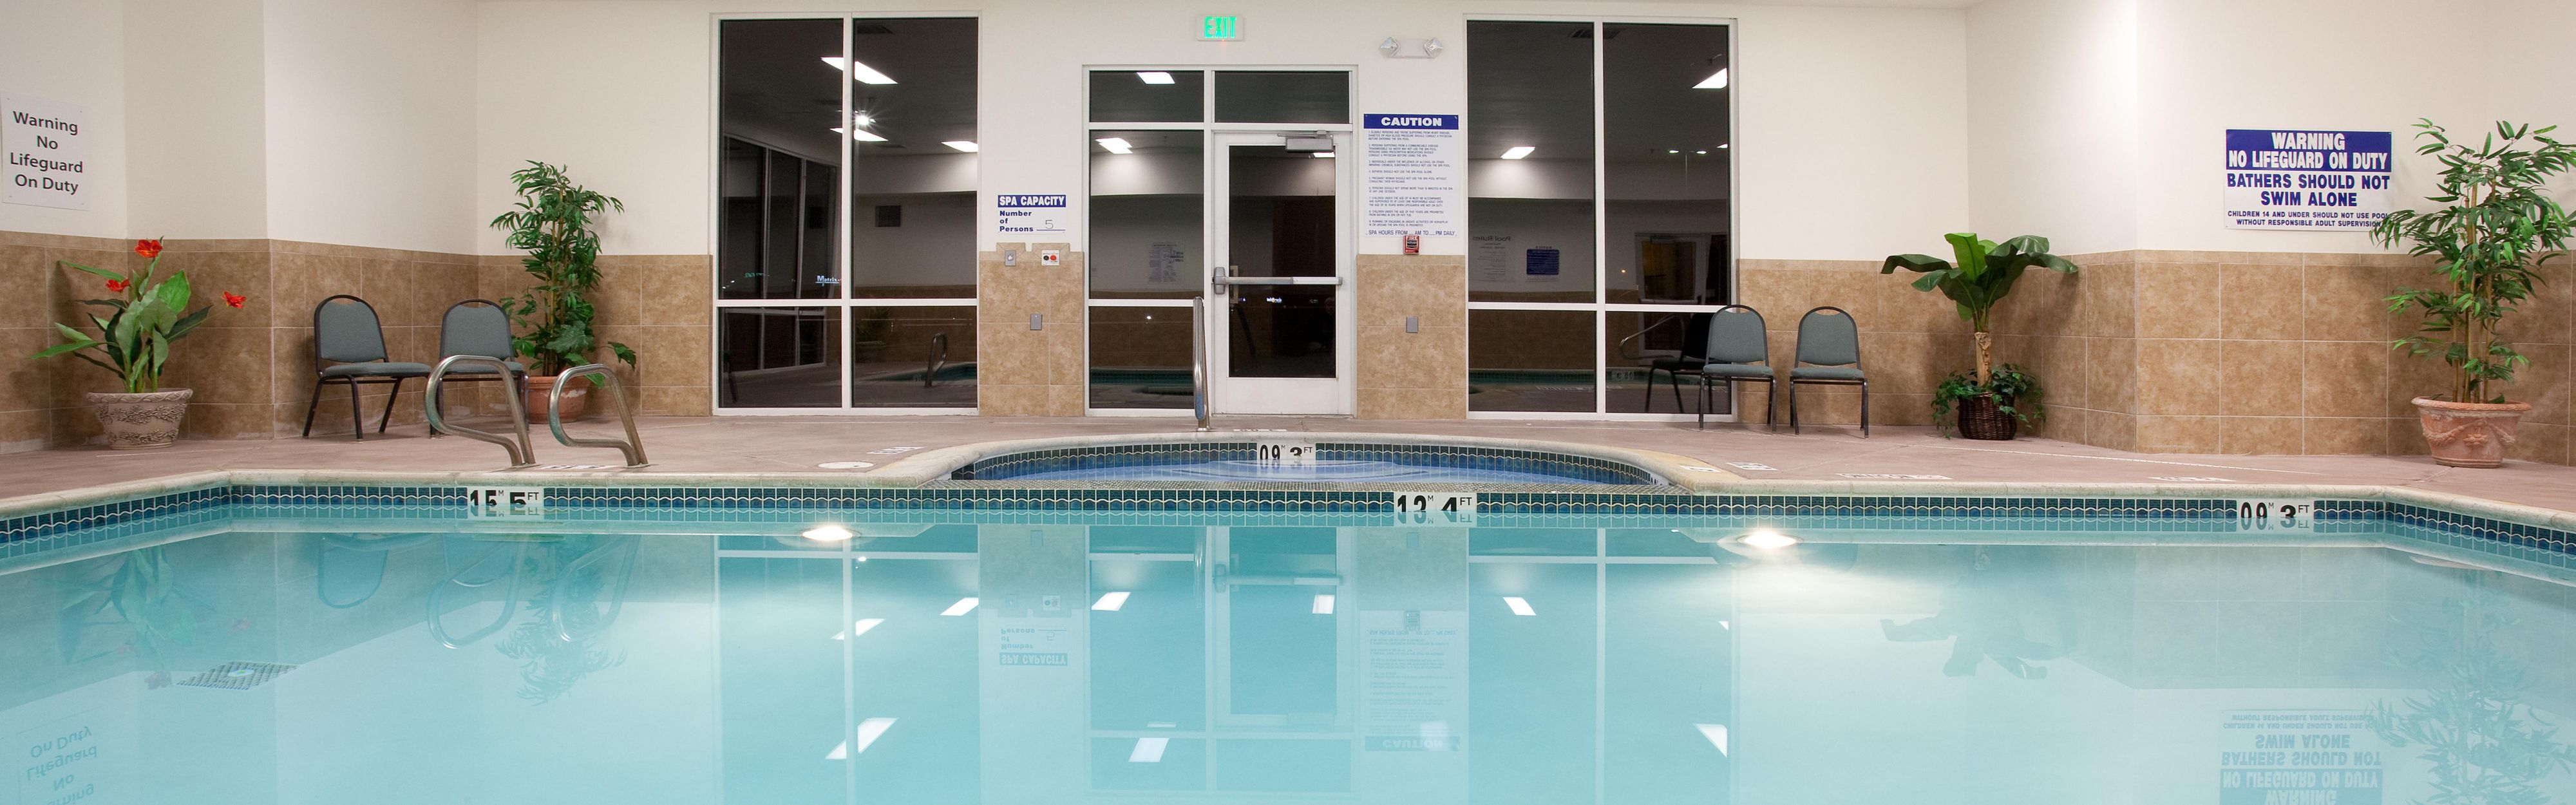 Holiday Inn Express & Suites American Fork- North Provo image 1